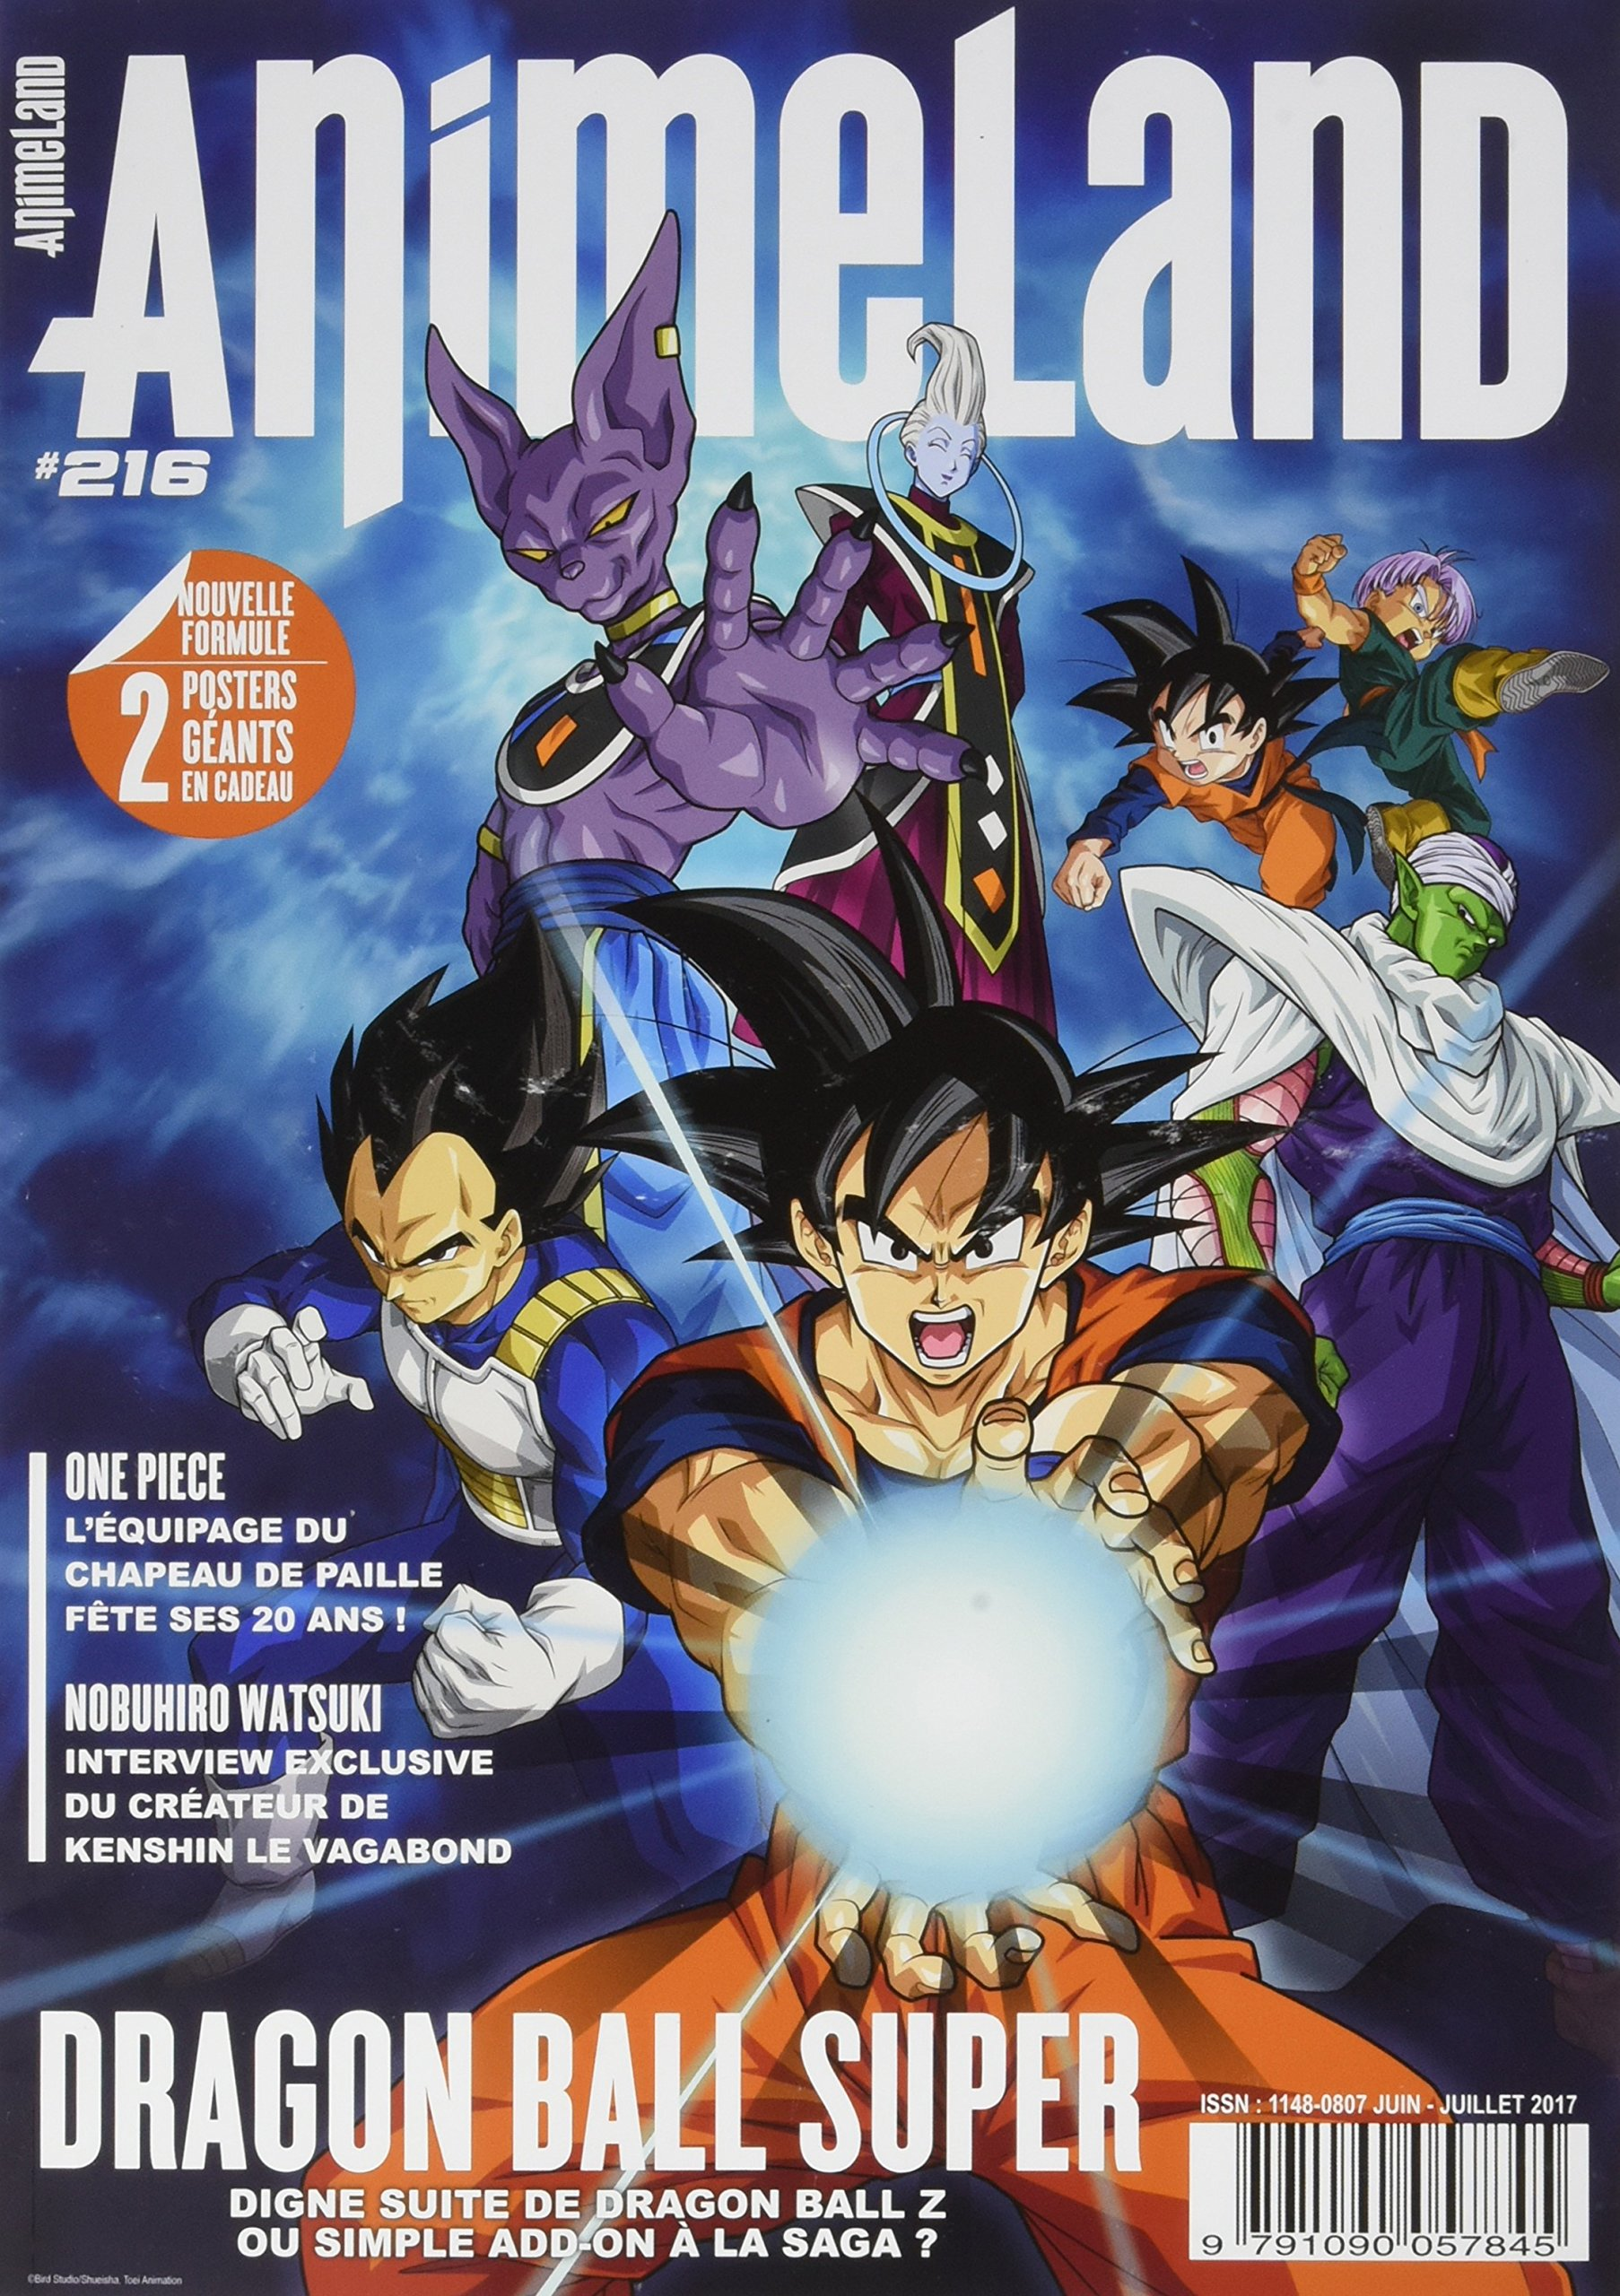 Animeland 216 juin/juillet 2017 (AM.CULT.JAPON.) (French Edition): Collectif: 9791090057845: Amazon.com: Books